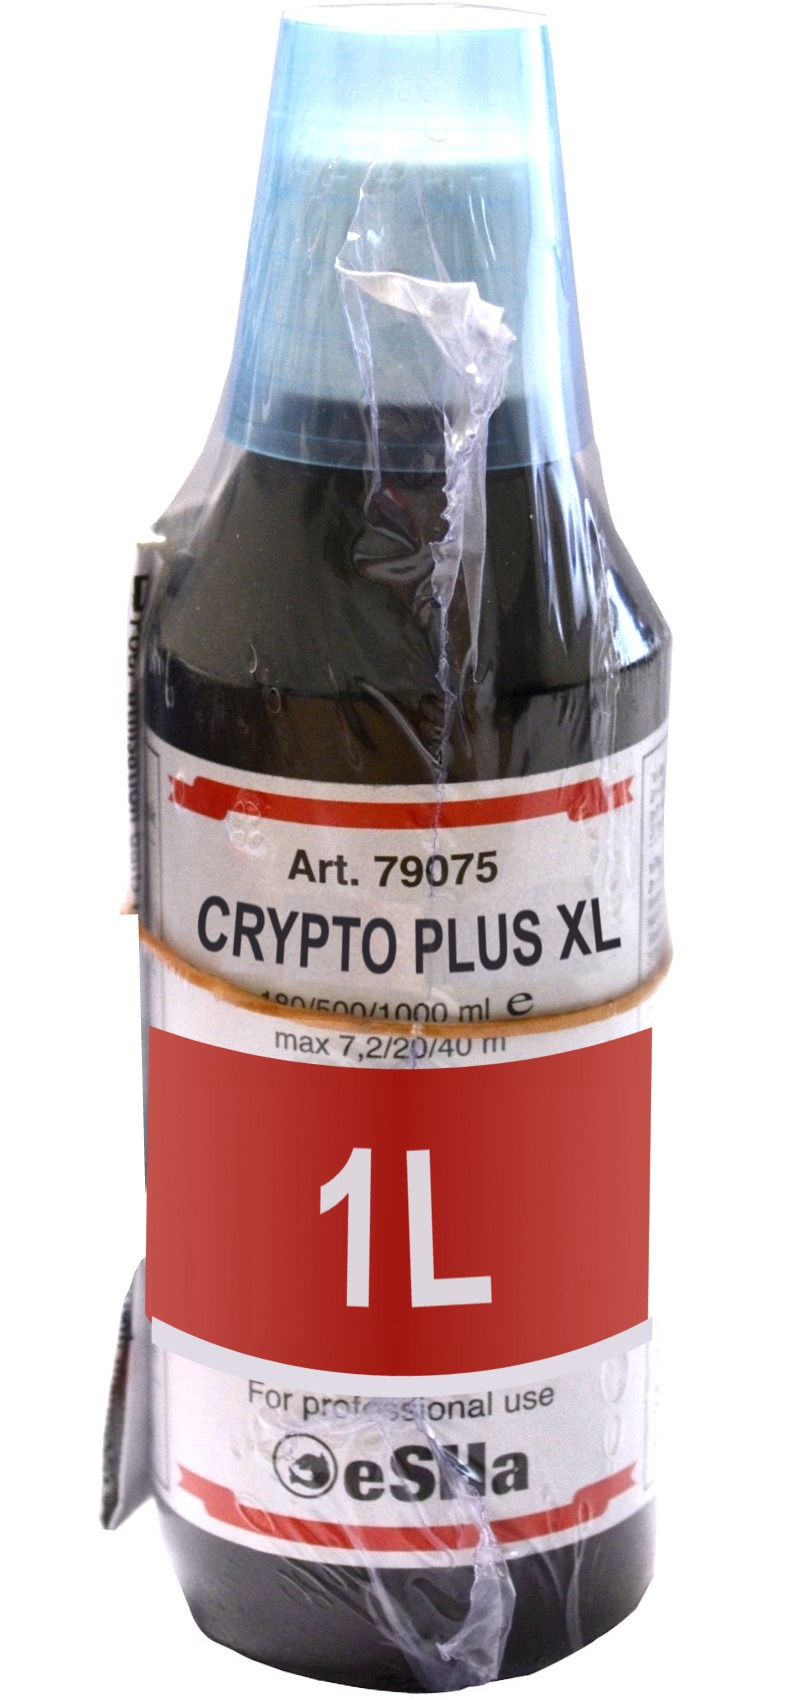 esha-CRYPTO-PLUS-XL-1-l